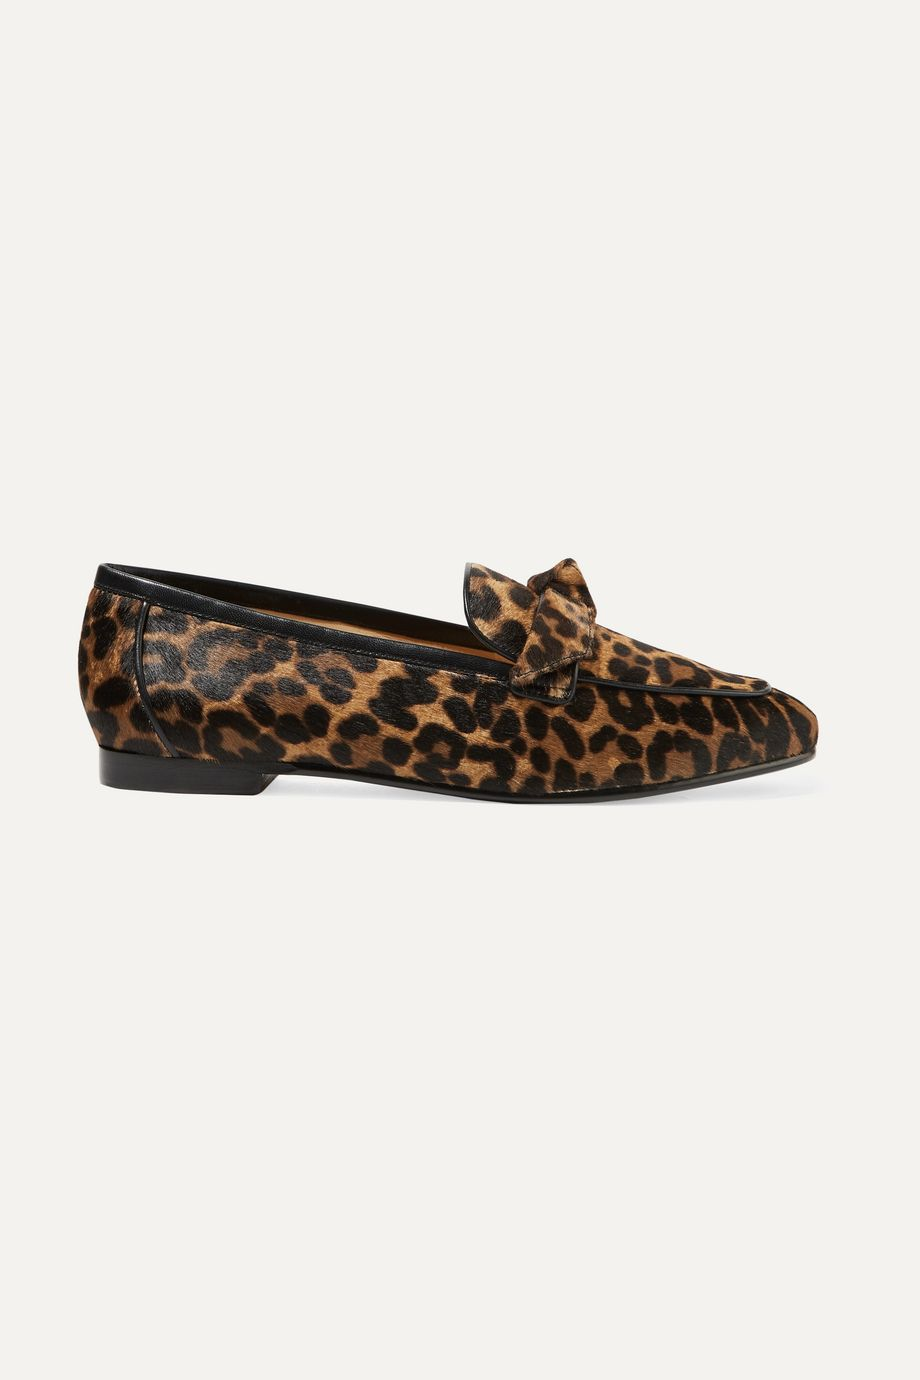 Alexandre Birman Becky bow-embellished leopard-print calf hair loafers